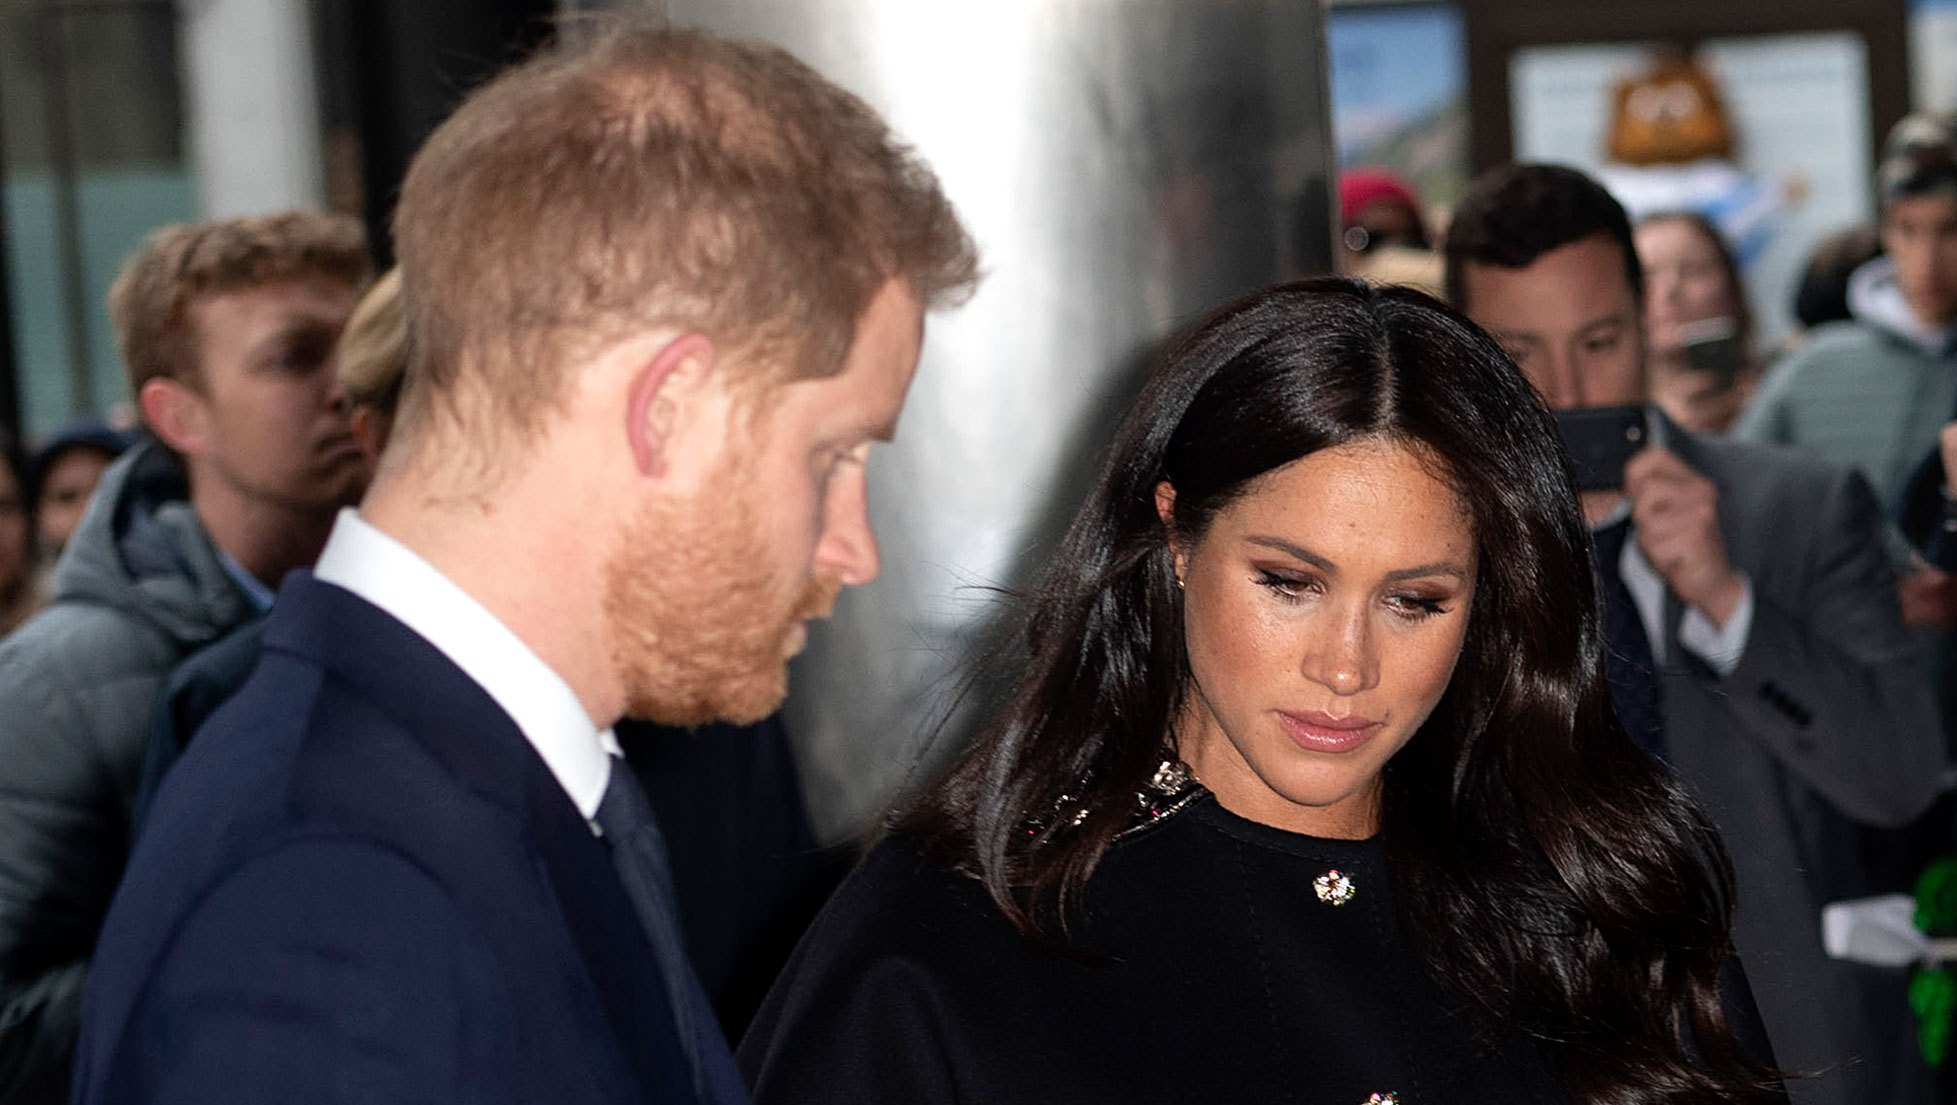 Prince Harry and Pregnant Duchess Meghan Pay Tribute to Christchurch Victims